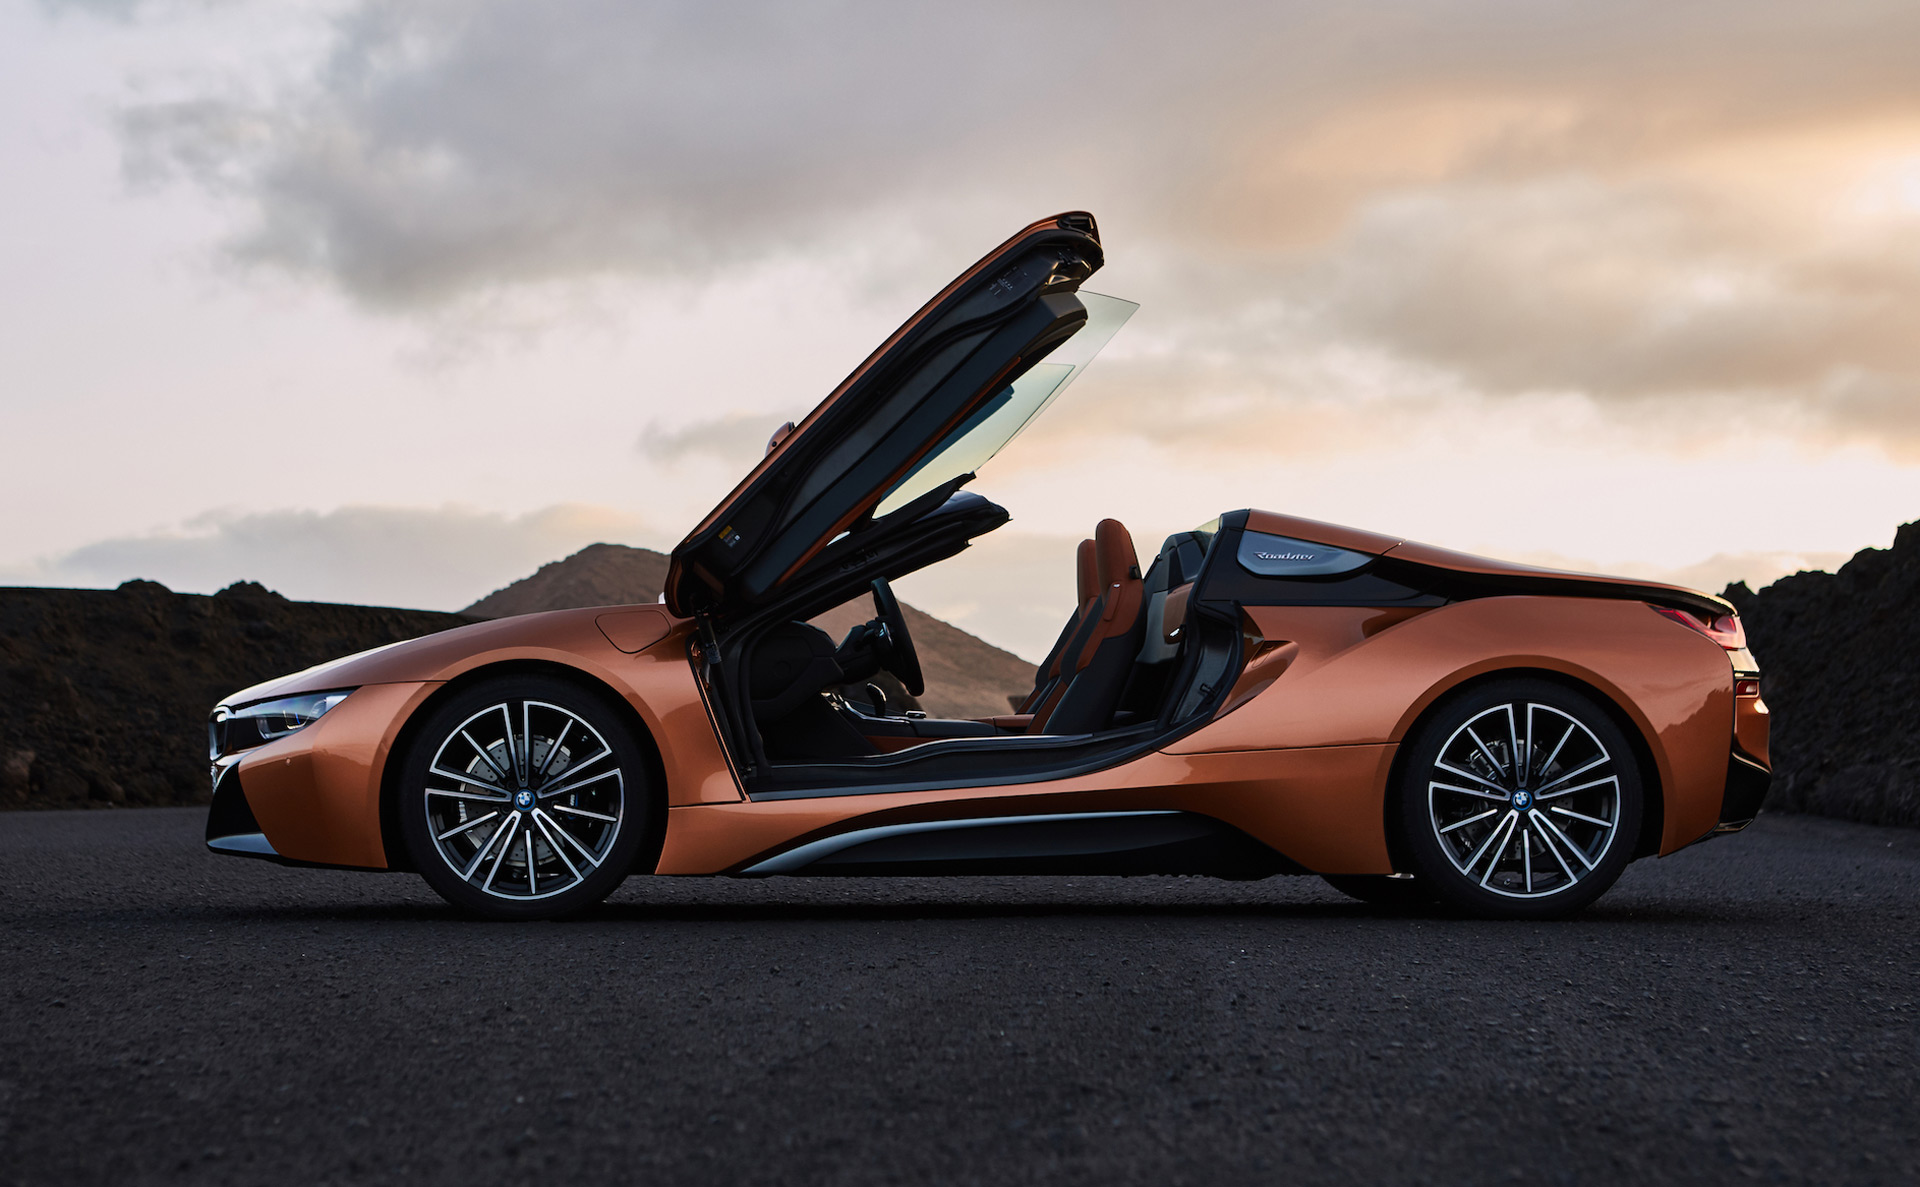 Bmw I8 Roadster Priced At 164295 Will Be Most Expensive Bimmer Sold In Us